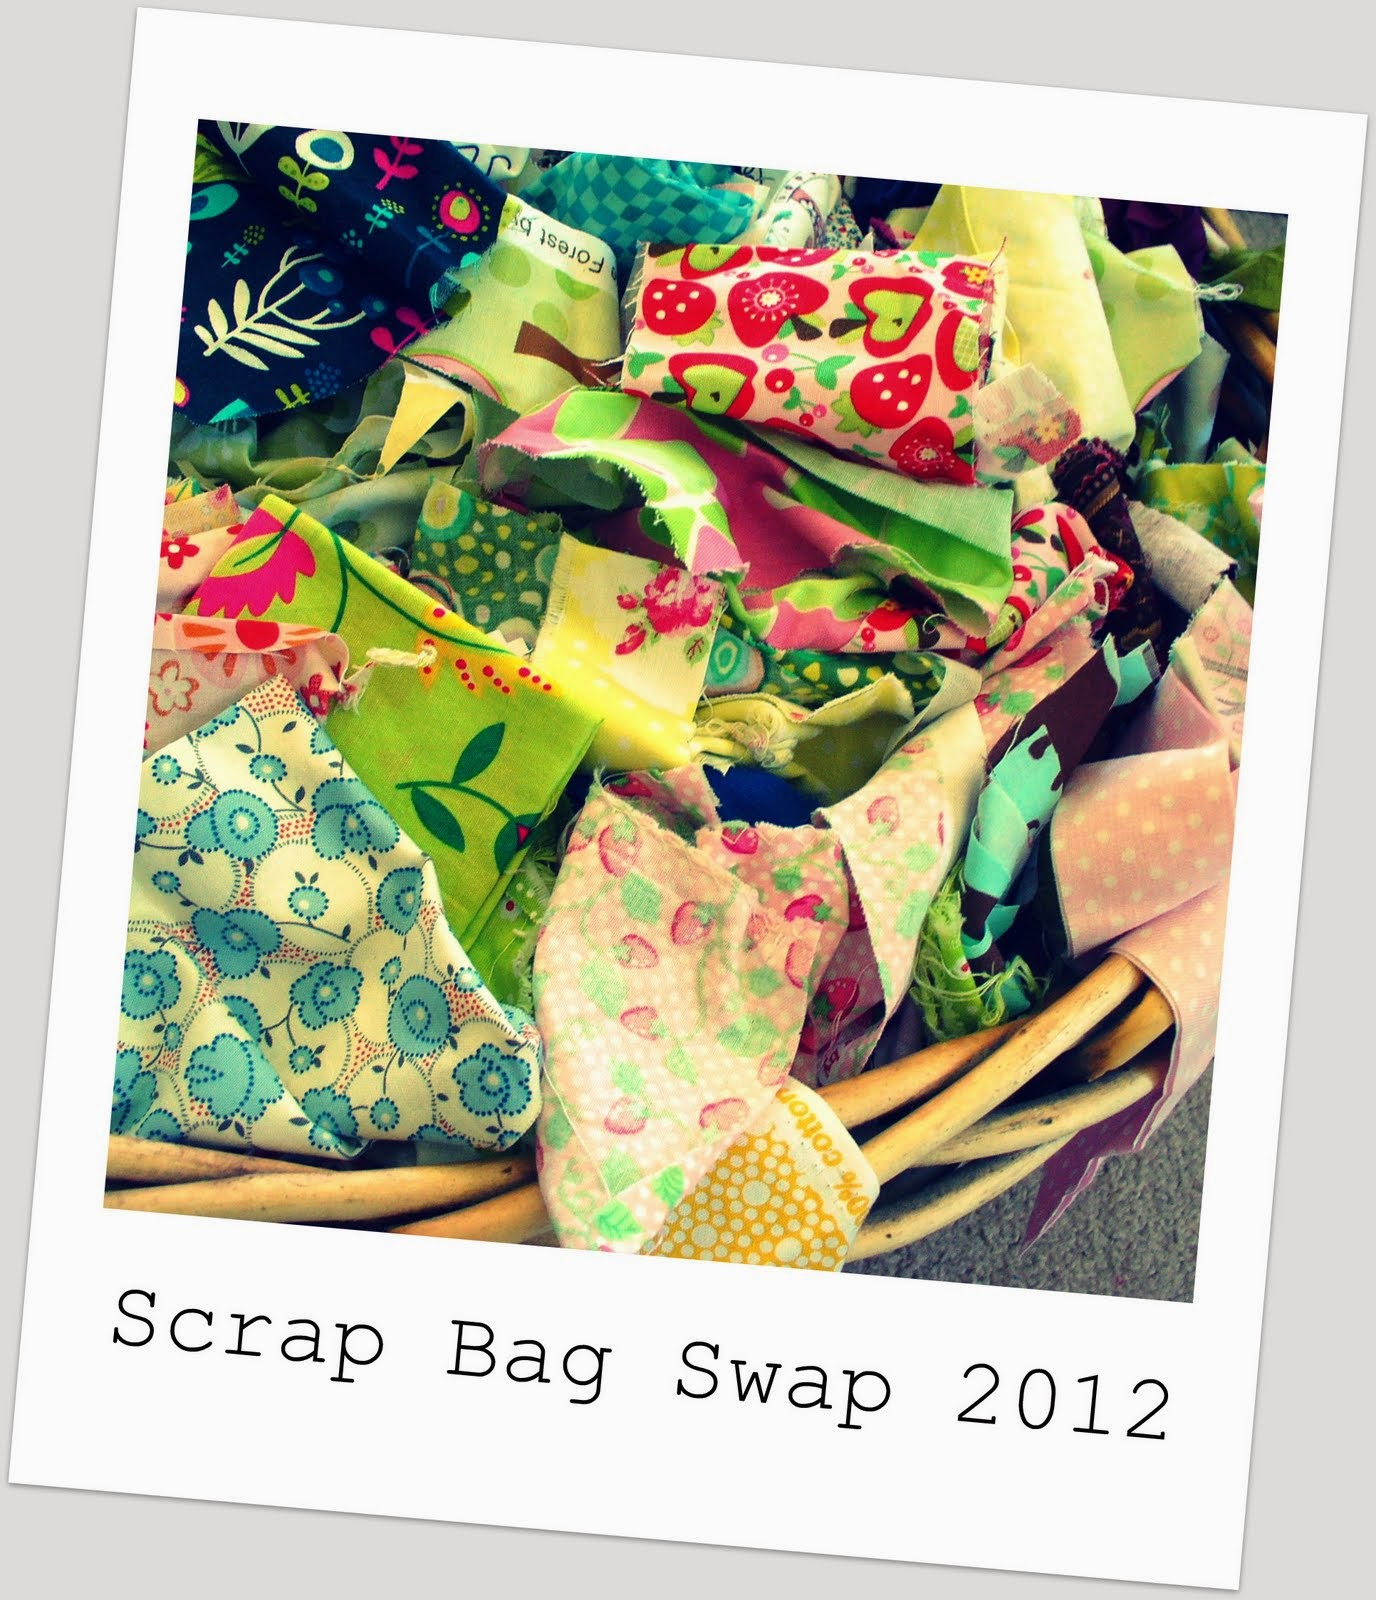 Scrap Bag Swap 2012 at notchkas-wardrobe.blogspot.com